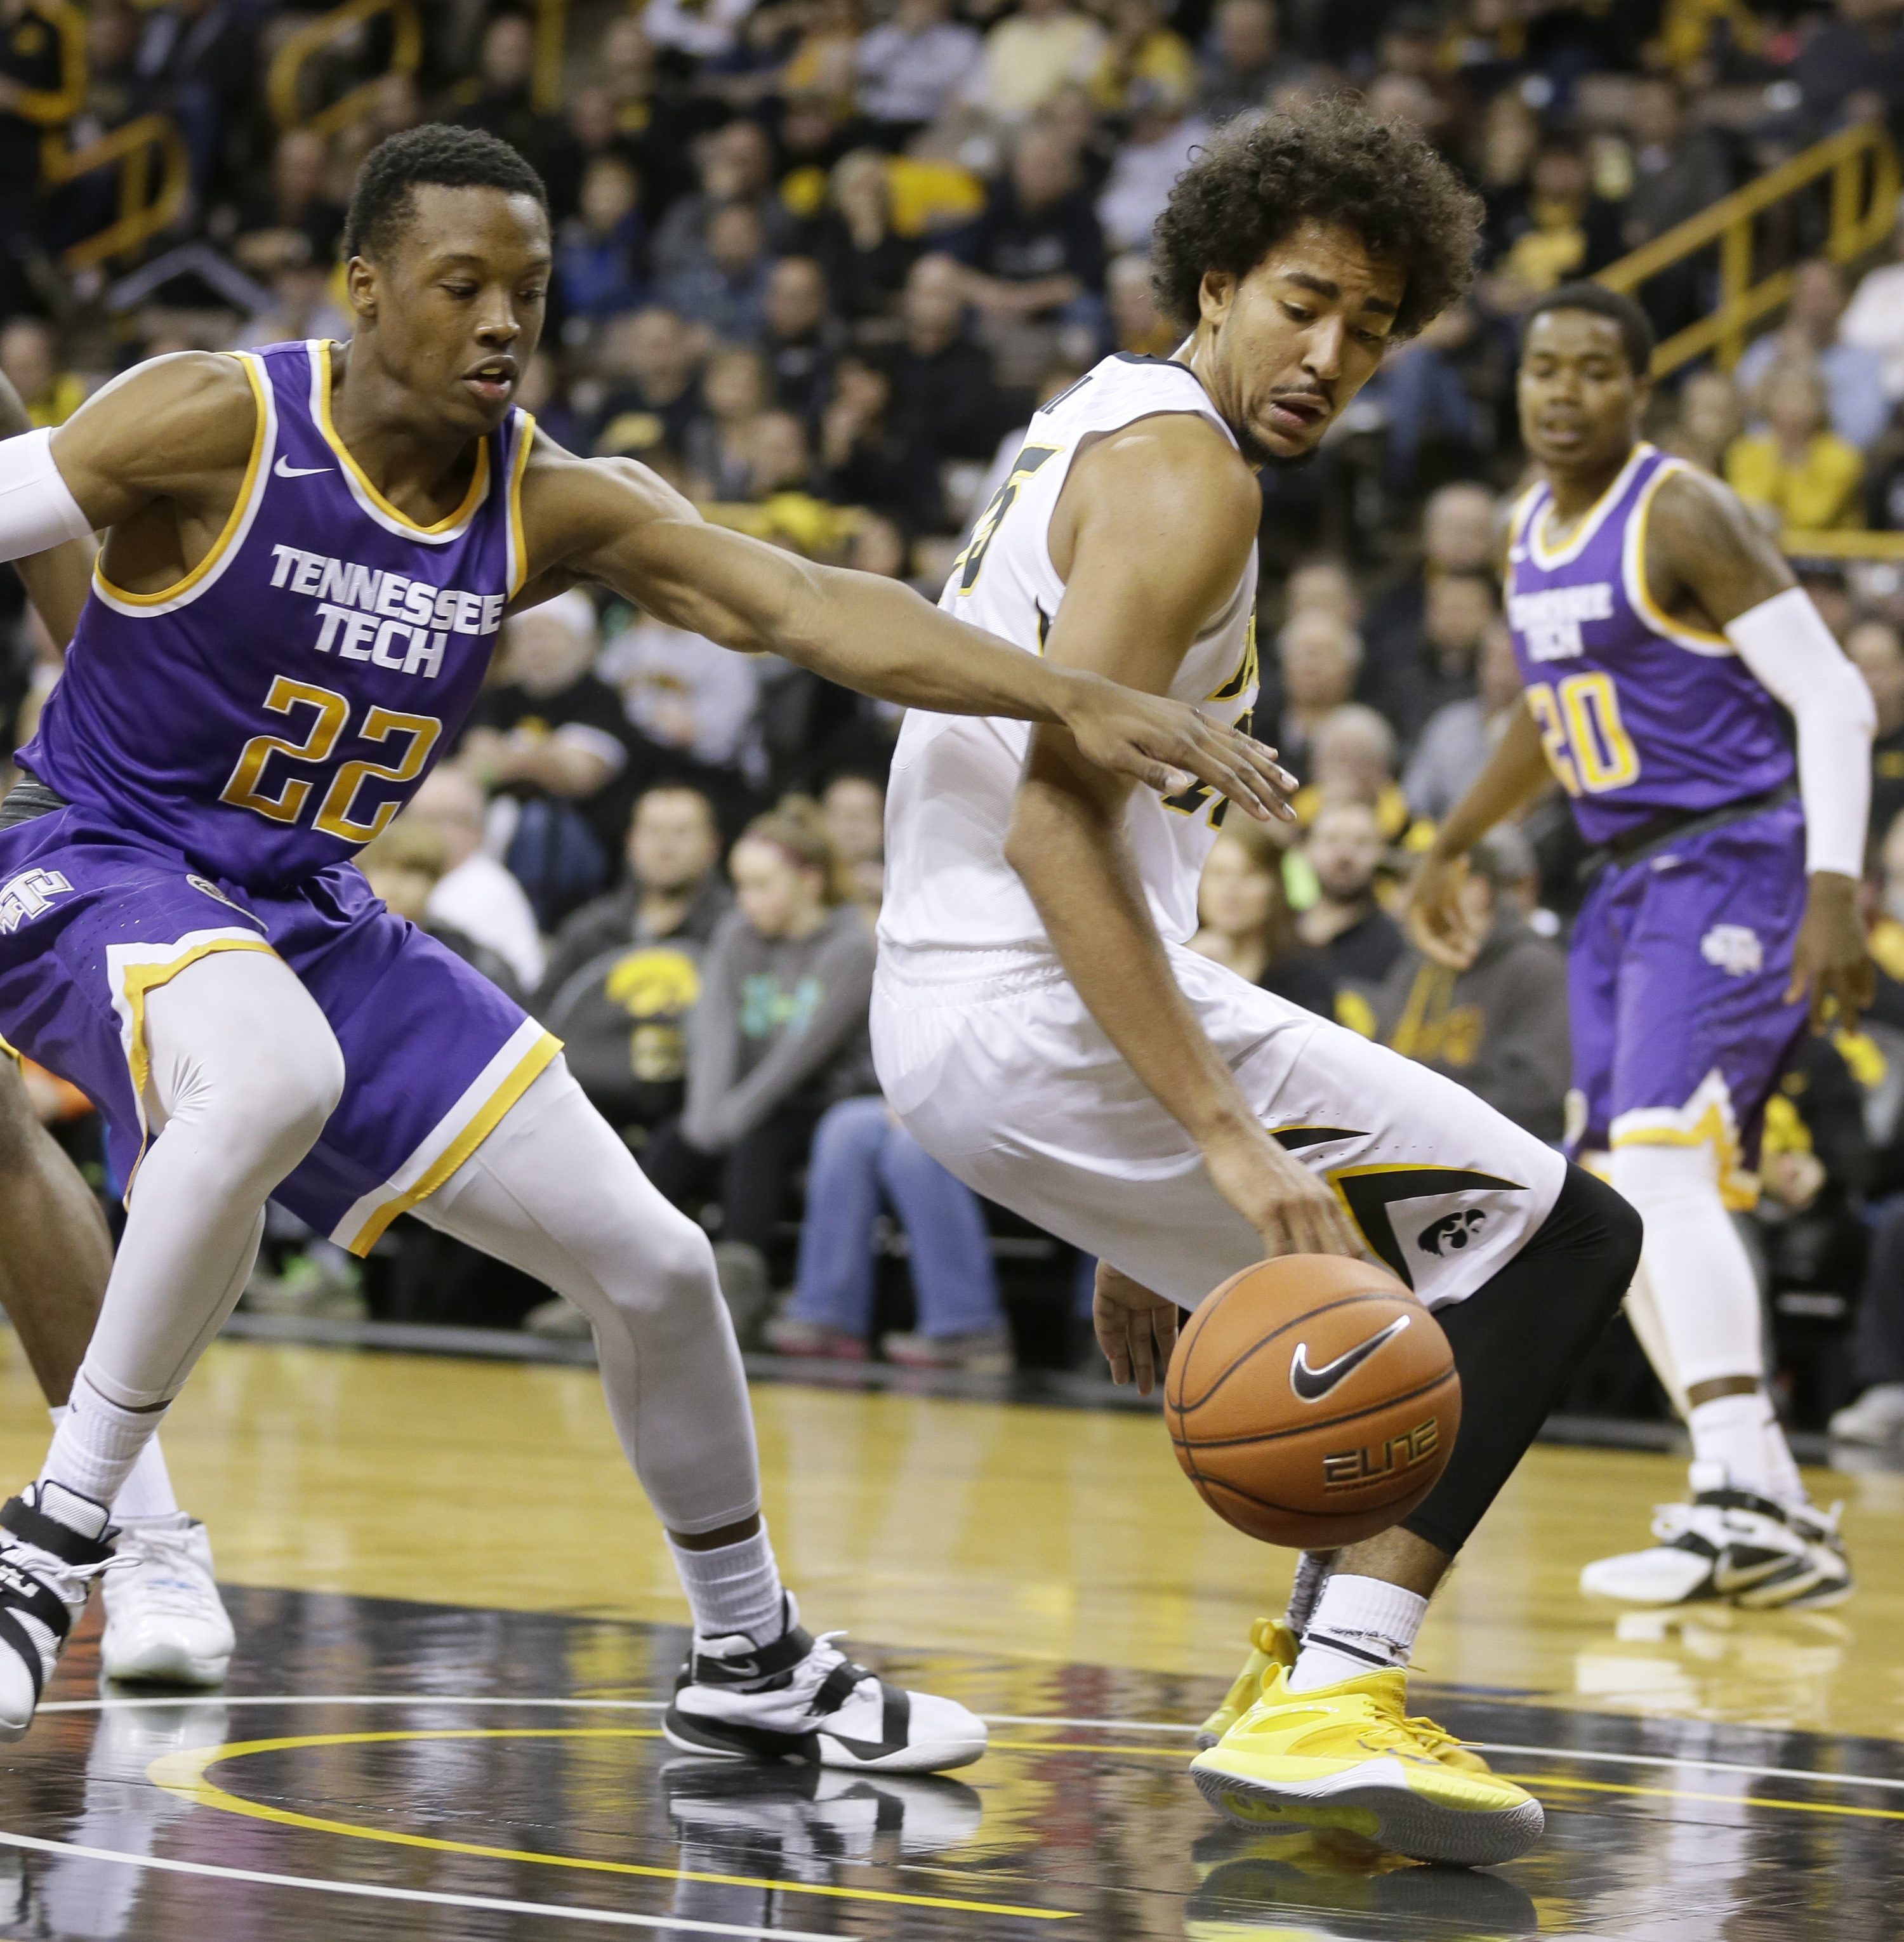 Tennessee Tech forward Courtney Alexander II, left, fights for the ball with Iowa forward Dom Uhl during the first half of an NCAA college basketball game, Tuesday, Dec. 22, 2015, in Iowa City, Iowa. (AP Photo/Charlie Neibergall)